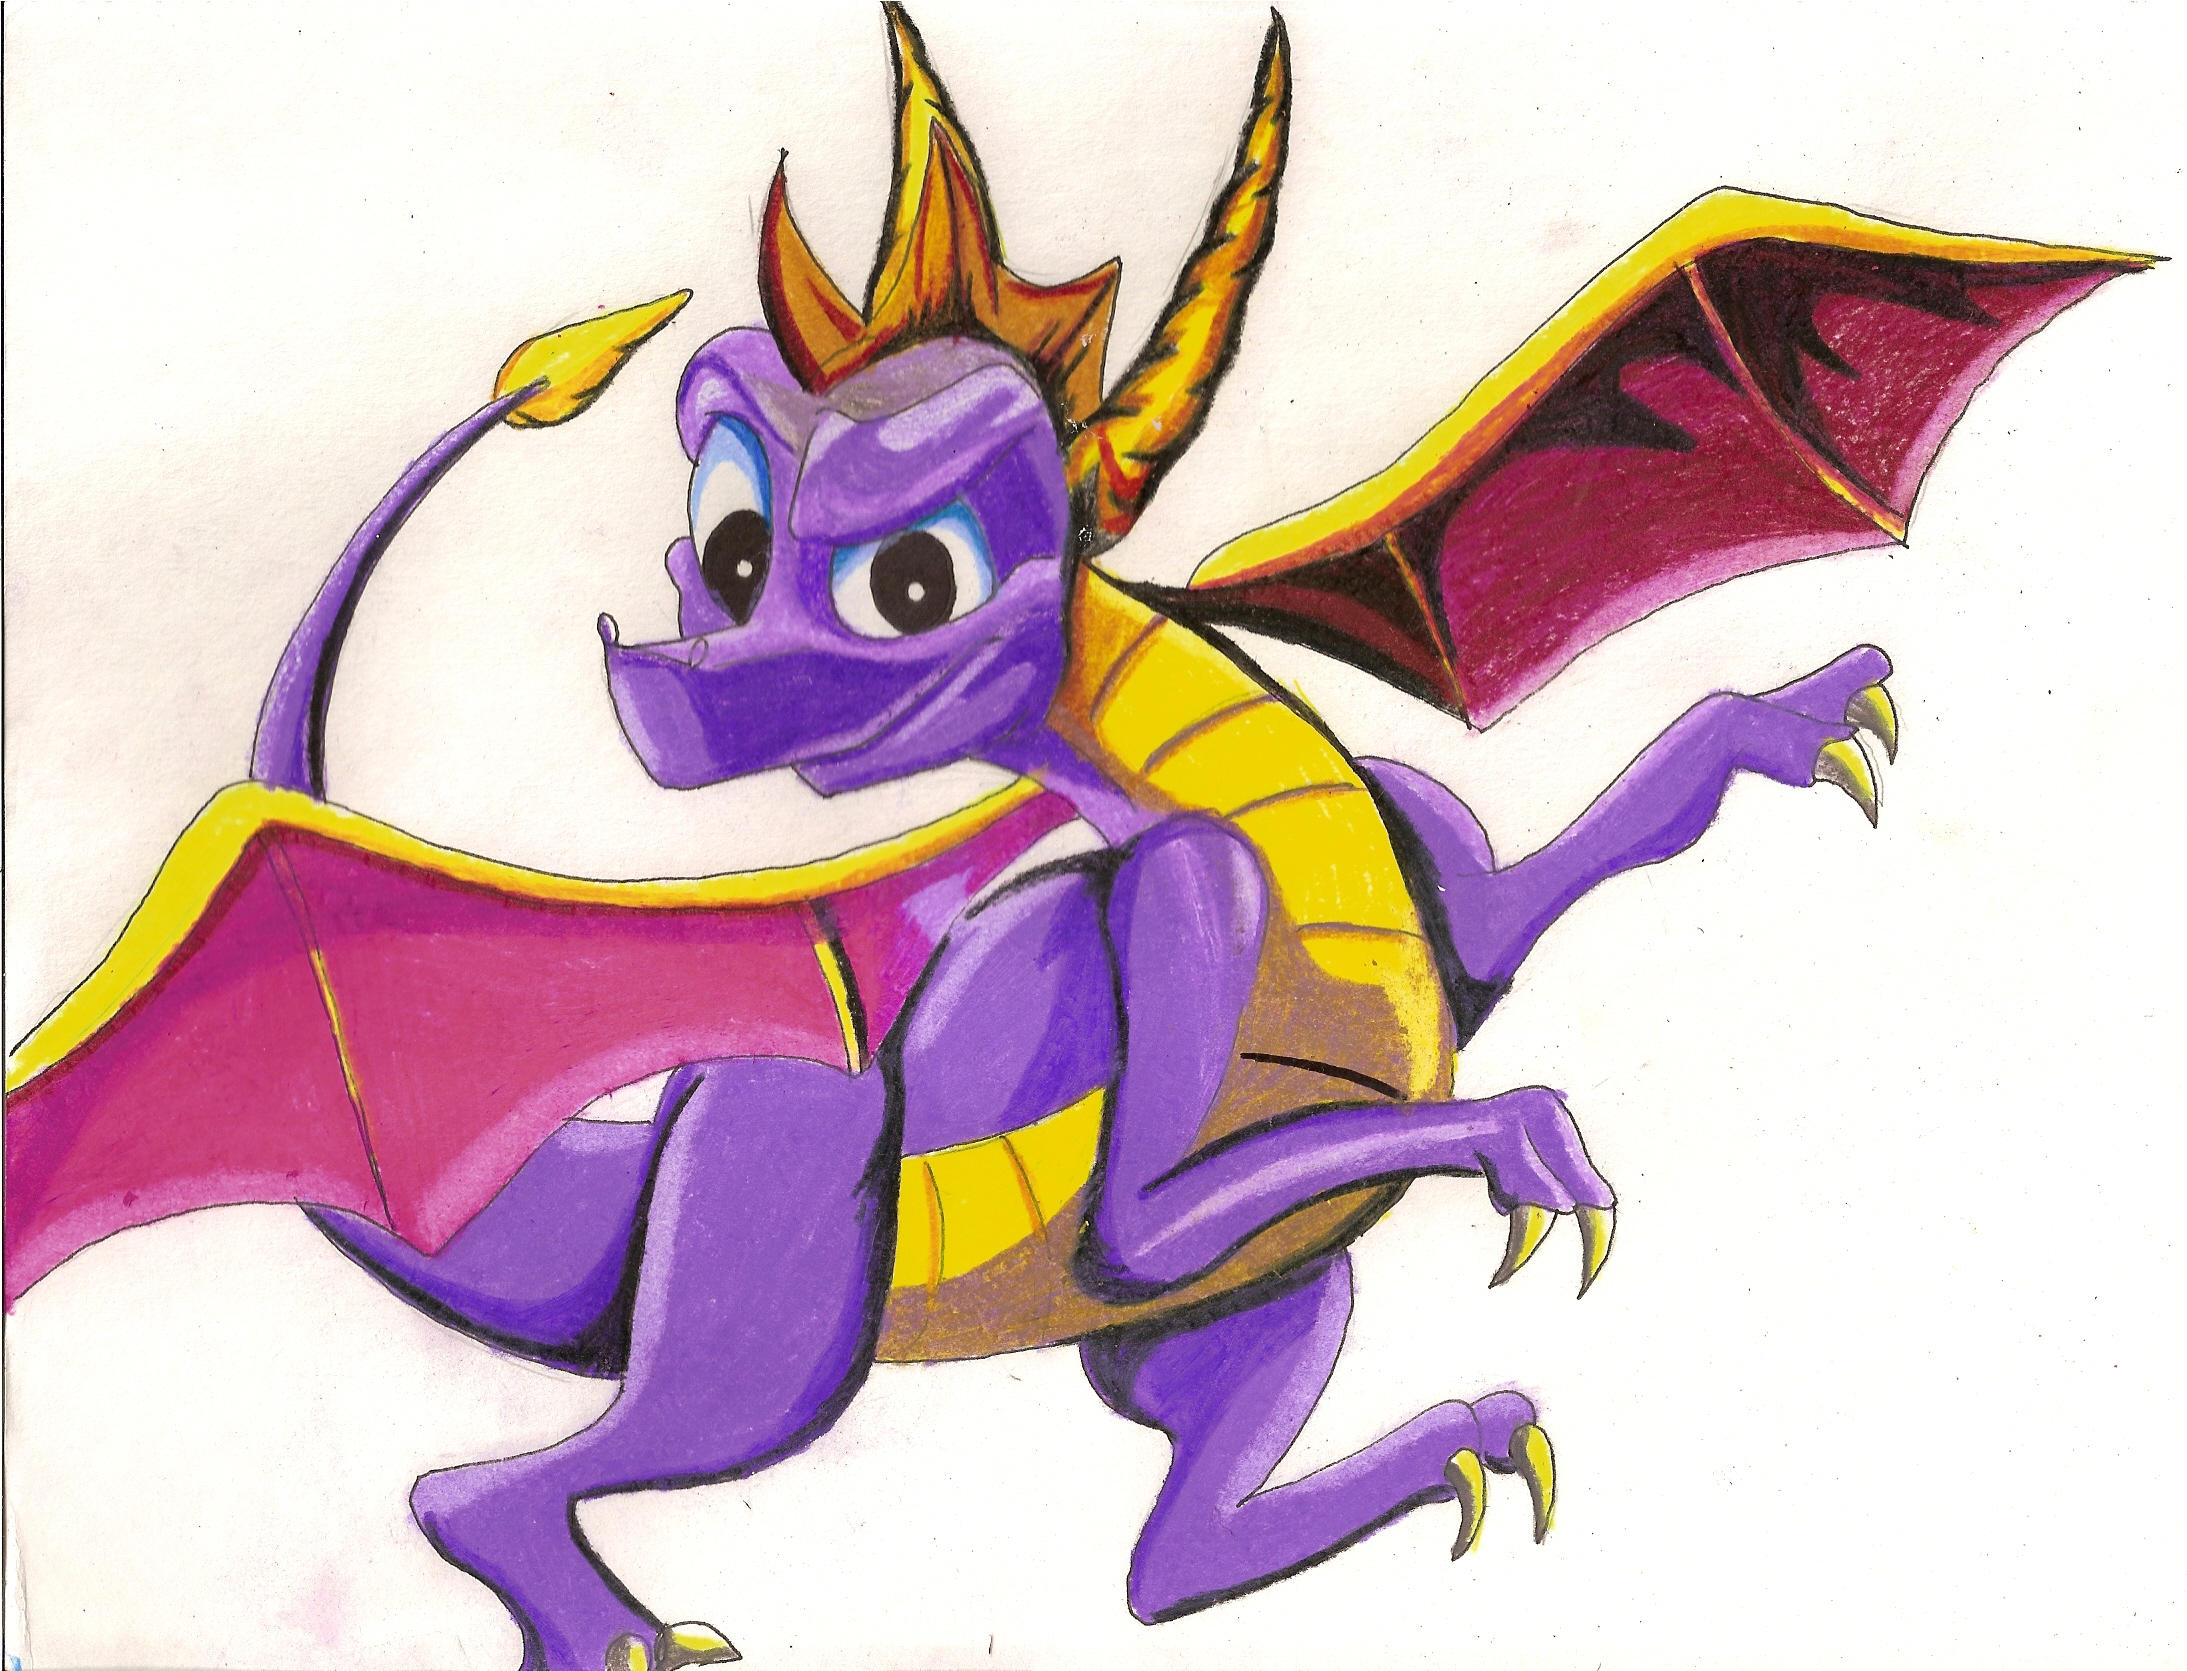 Spyro the Dragon by lacusyamato2008